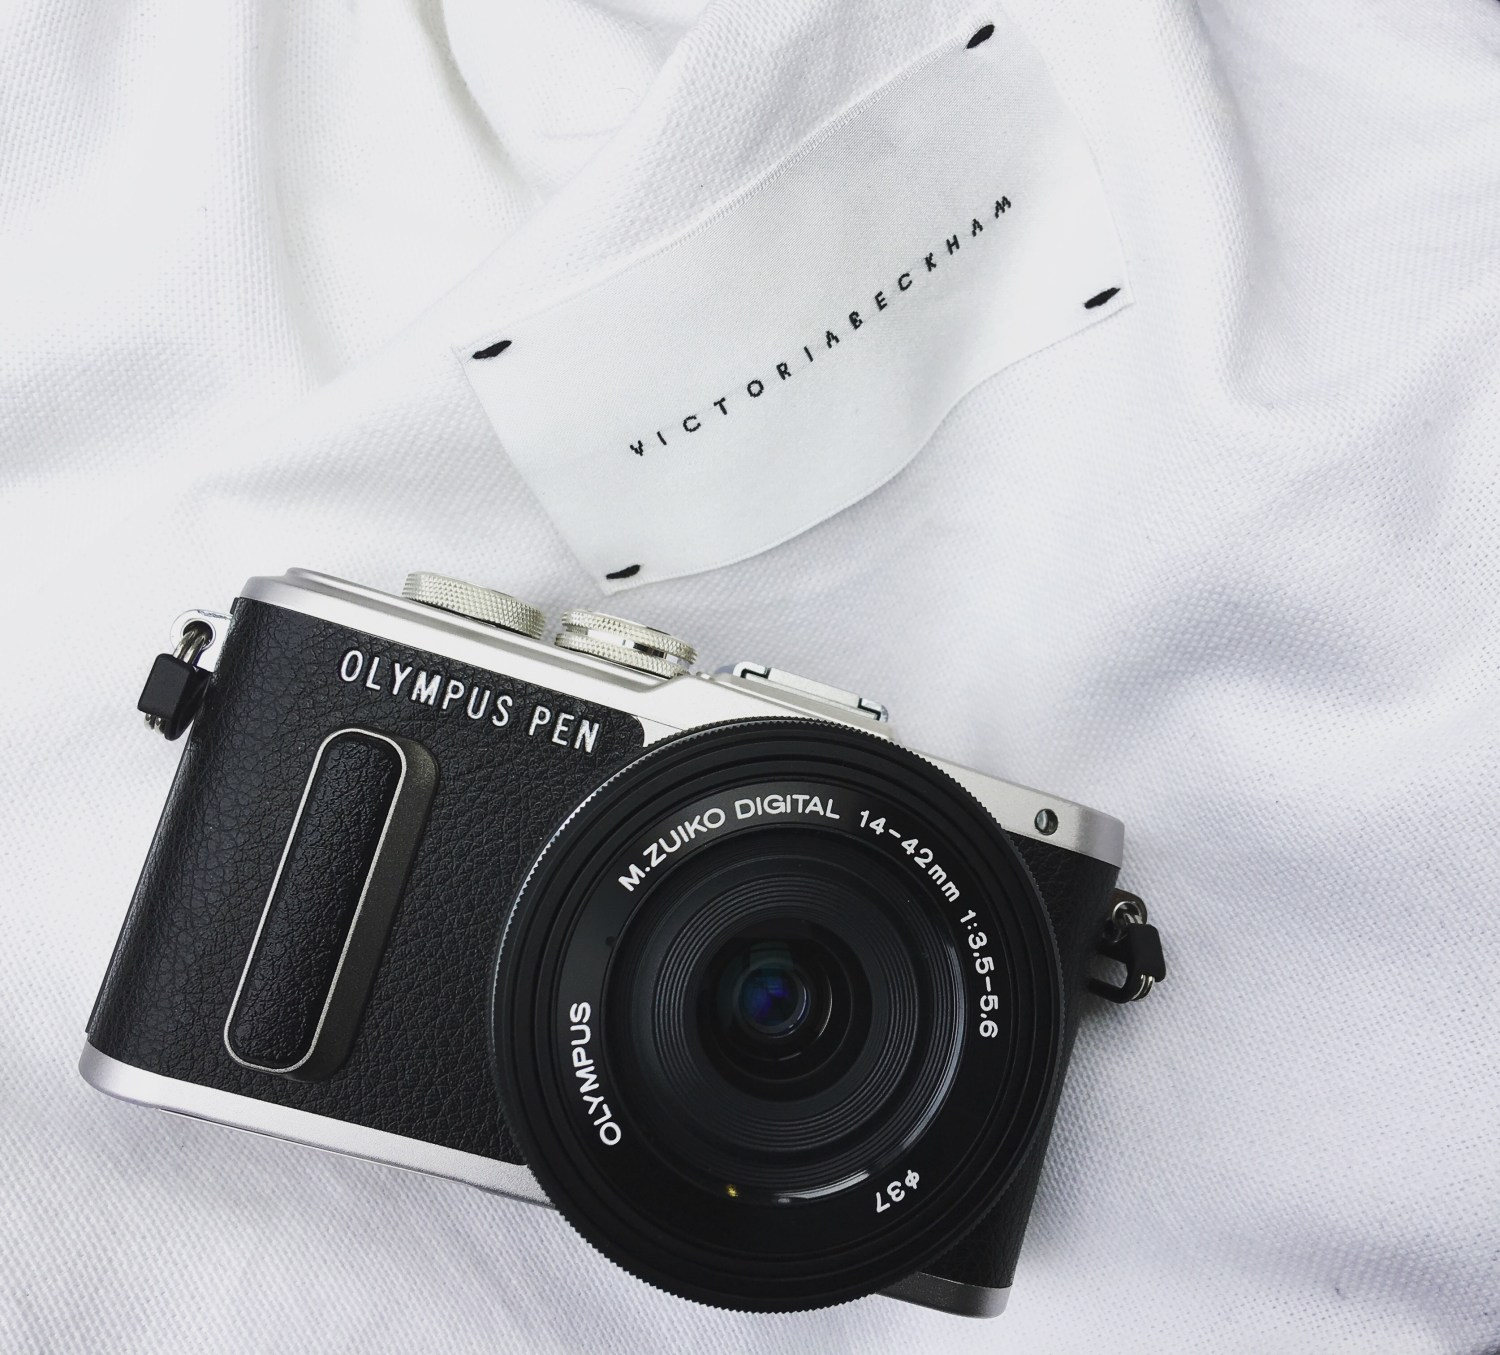 Olympus Pen E-PL8 camera on a Victoria Beckham dust bag